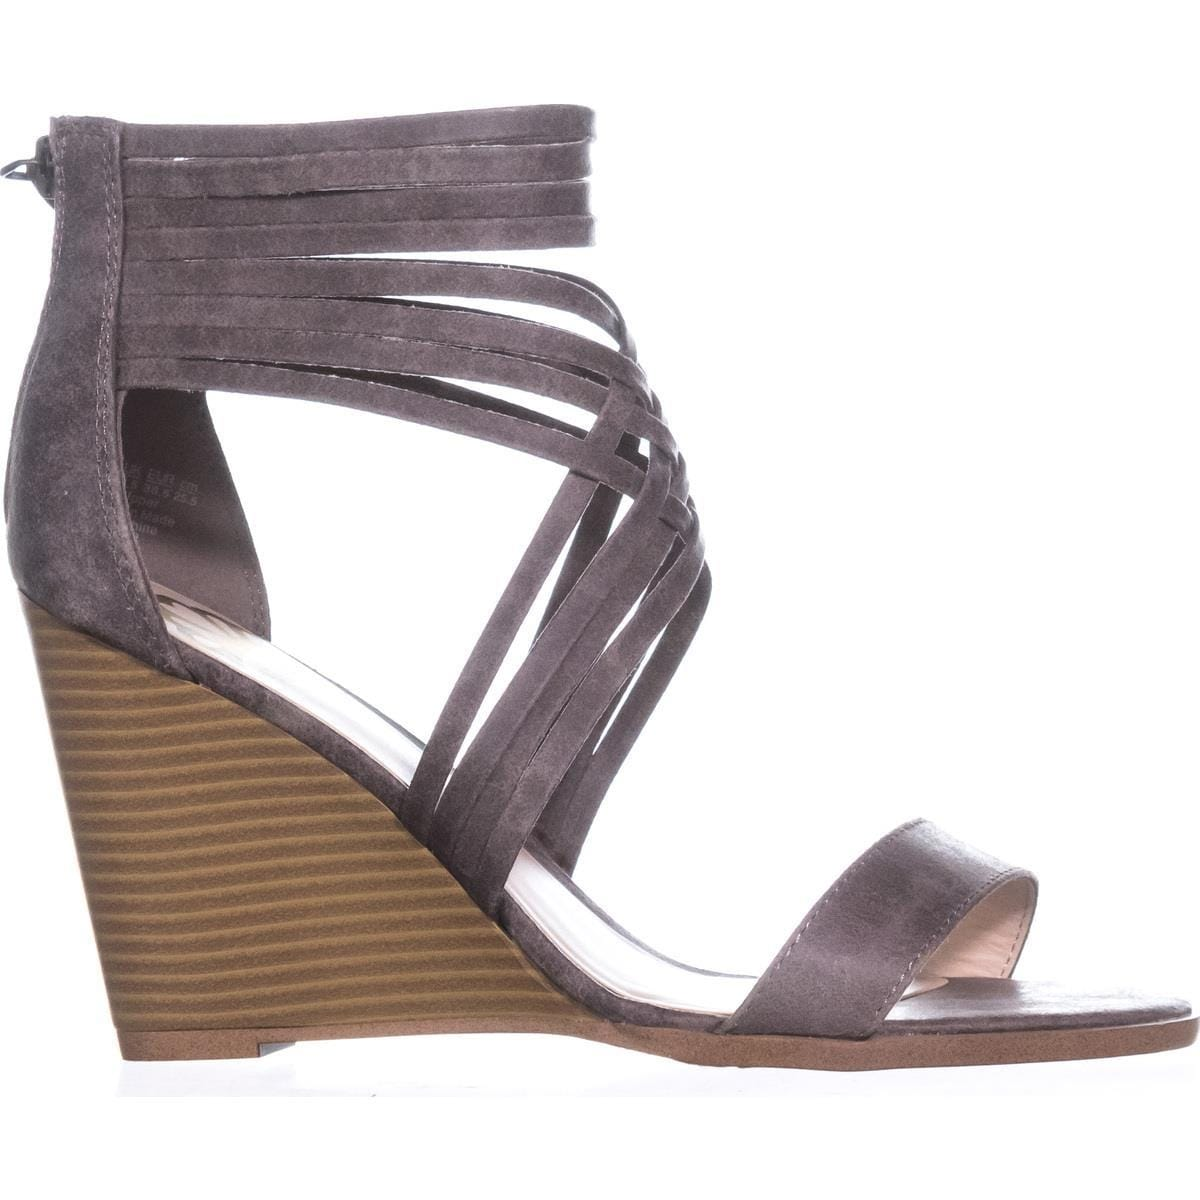 8525faf582 Shop Fergalicious Hunter Strappy Wedge Sandals, Doe - Free Shipping On  Orders Over $45 - Overstock - 20814075